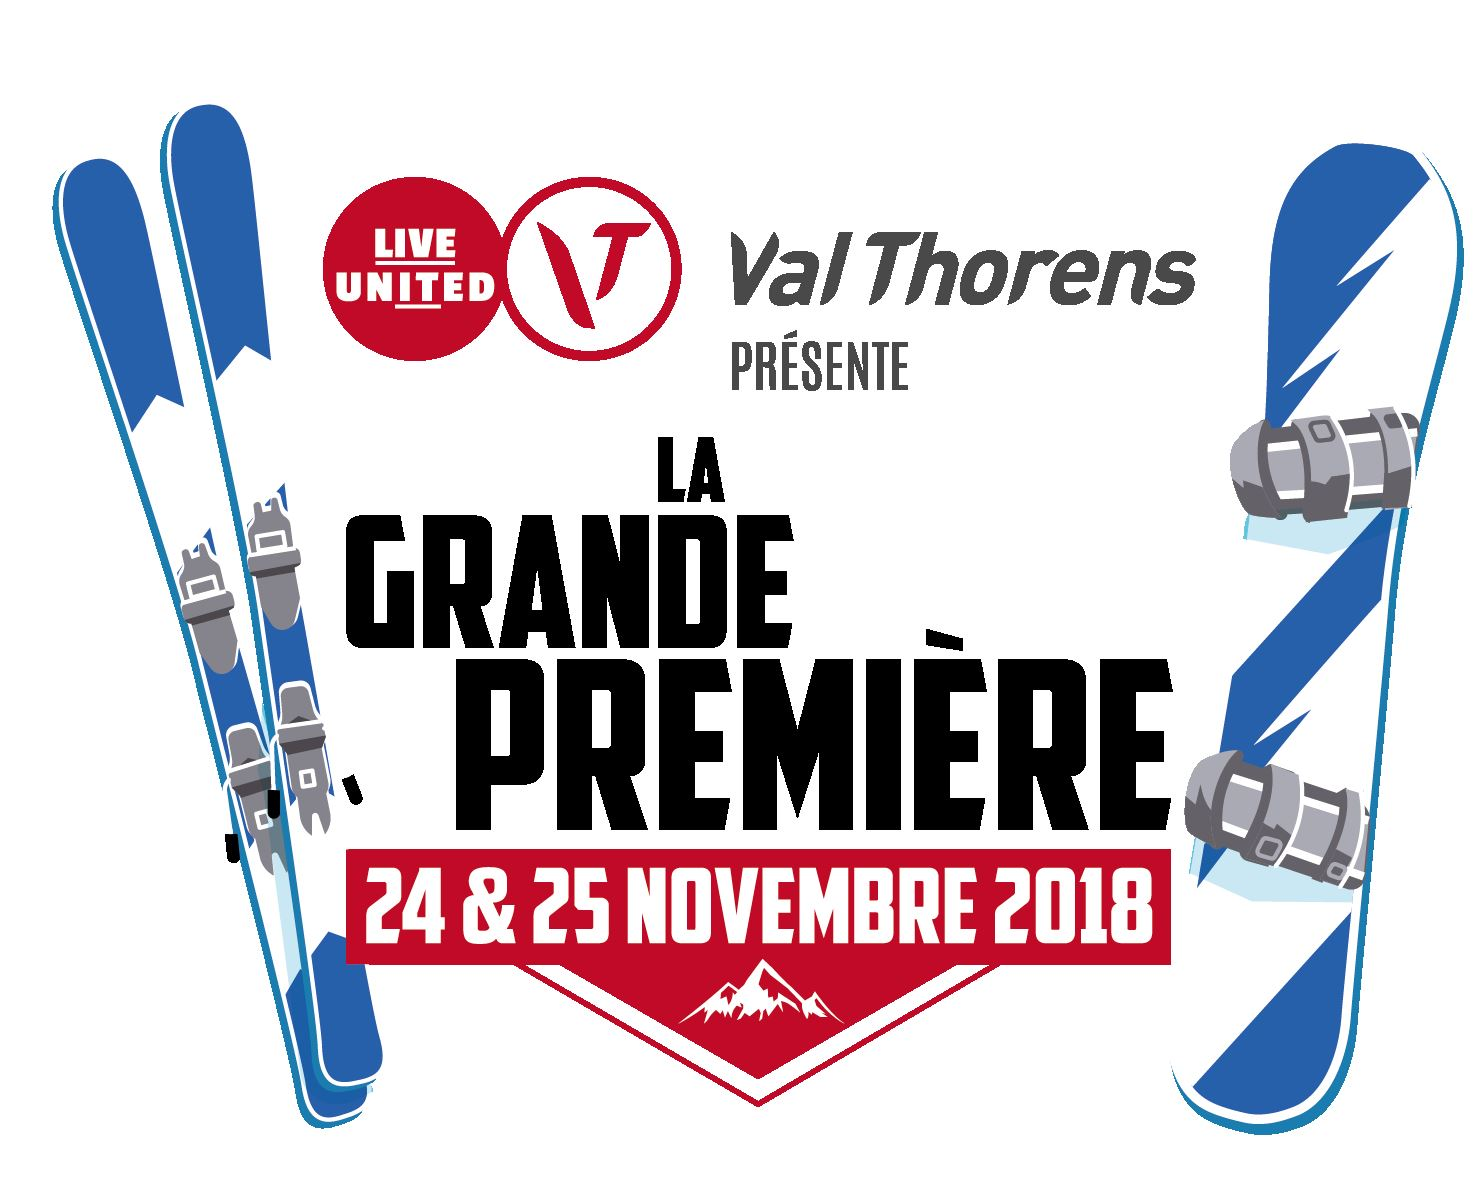 WEEKEND LA GRANDE PREMIERE - FROM 23/11/18 TO 25/11/18 - UCPA - FROM 178 € / PERS*